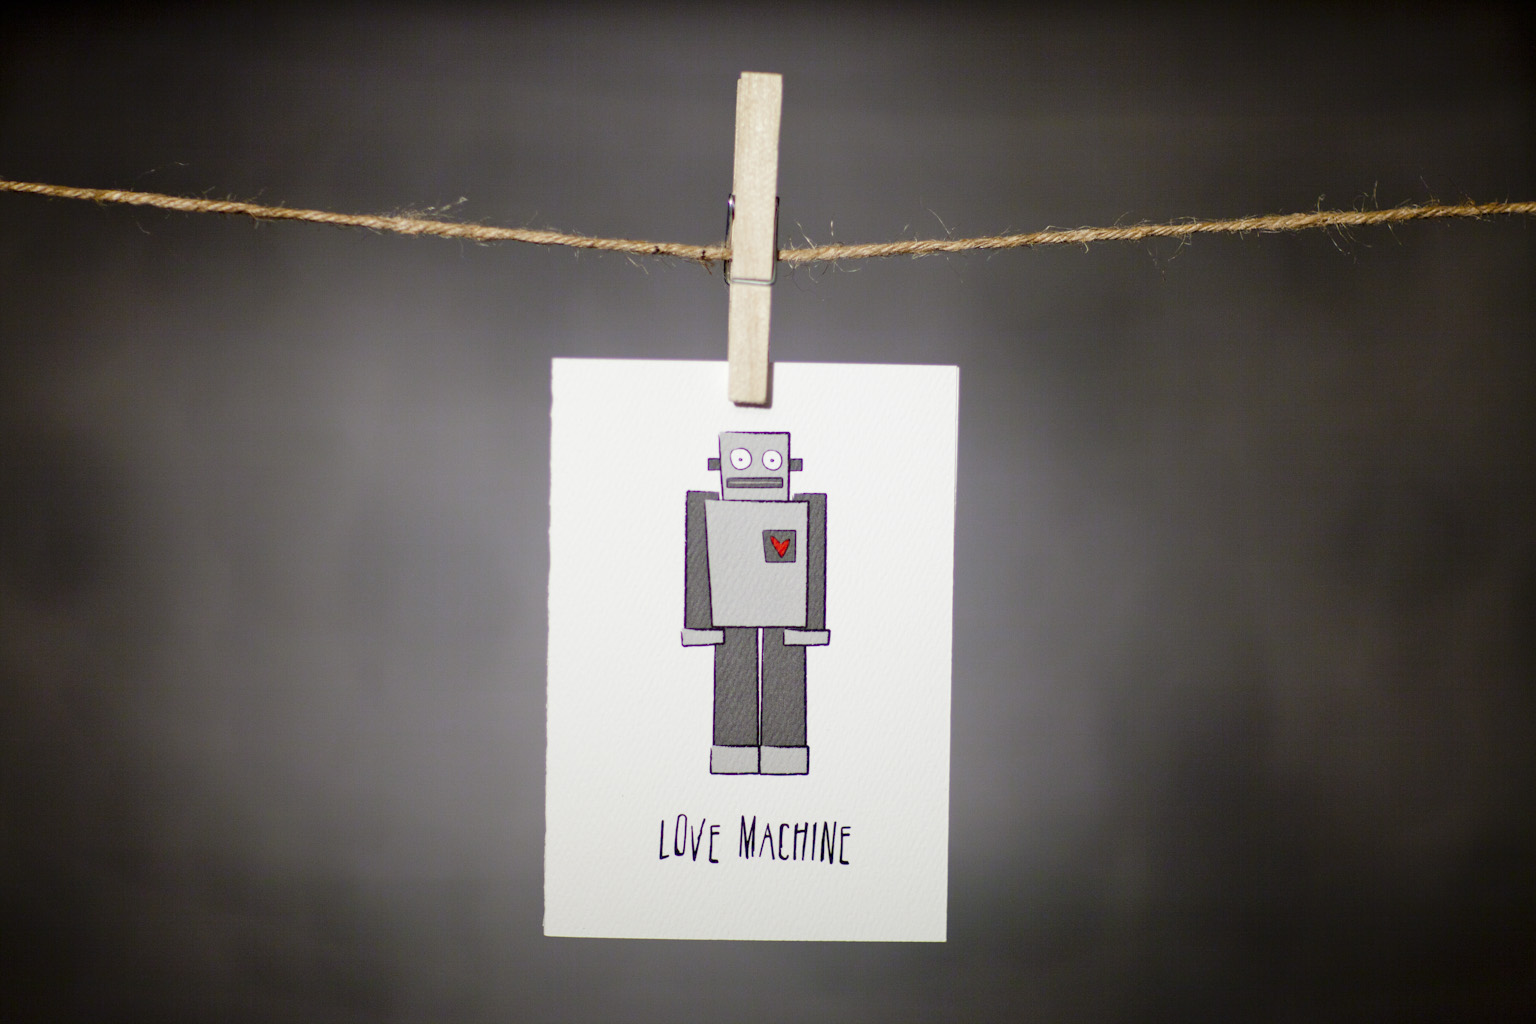 pURCHASE hEREthis big lug is a total love machine (don't let his rough exterior fool you!).  you should really send this gem to your sweetie today, reminding them what a love machine they've turned into.  each card:is printed on 100# recycled + responsibly-sourced paper //measures 3.5{quote} x 5{quote} //is accompanied by a recycled kraft paper 4-bar envelope // professionally printed //individually packaged in sealed cellophane sleeve //crafted + printed in colorado, usa.